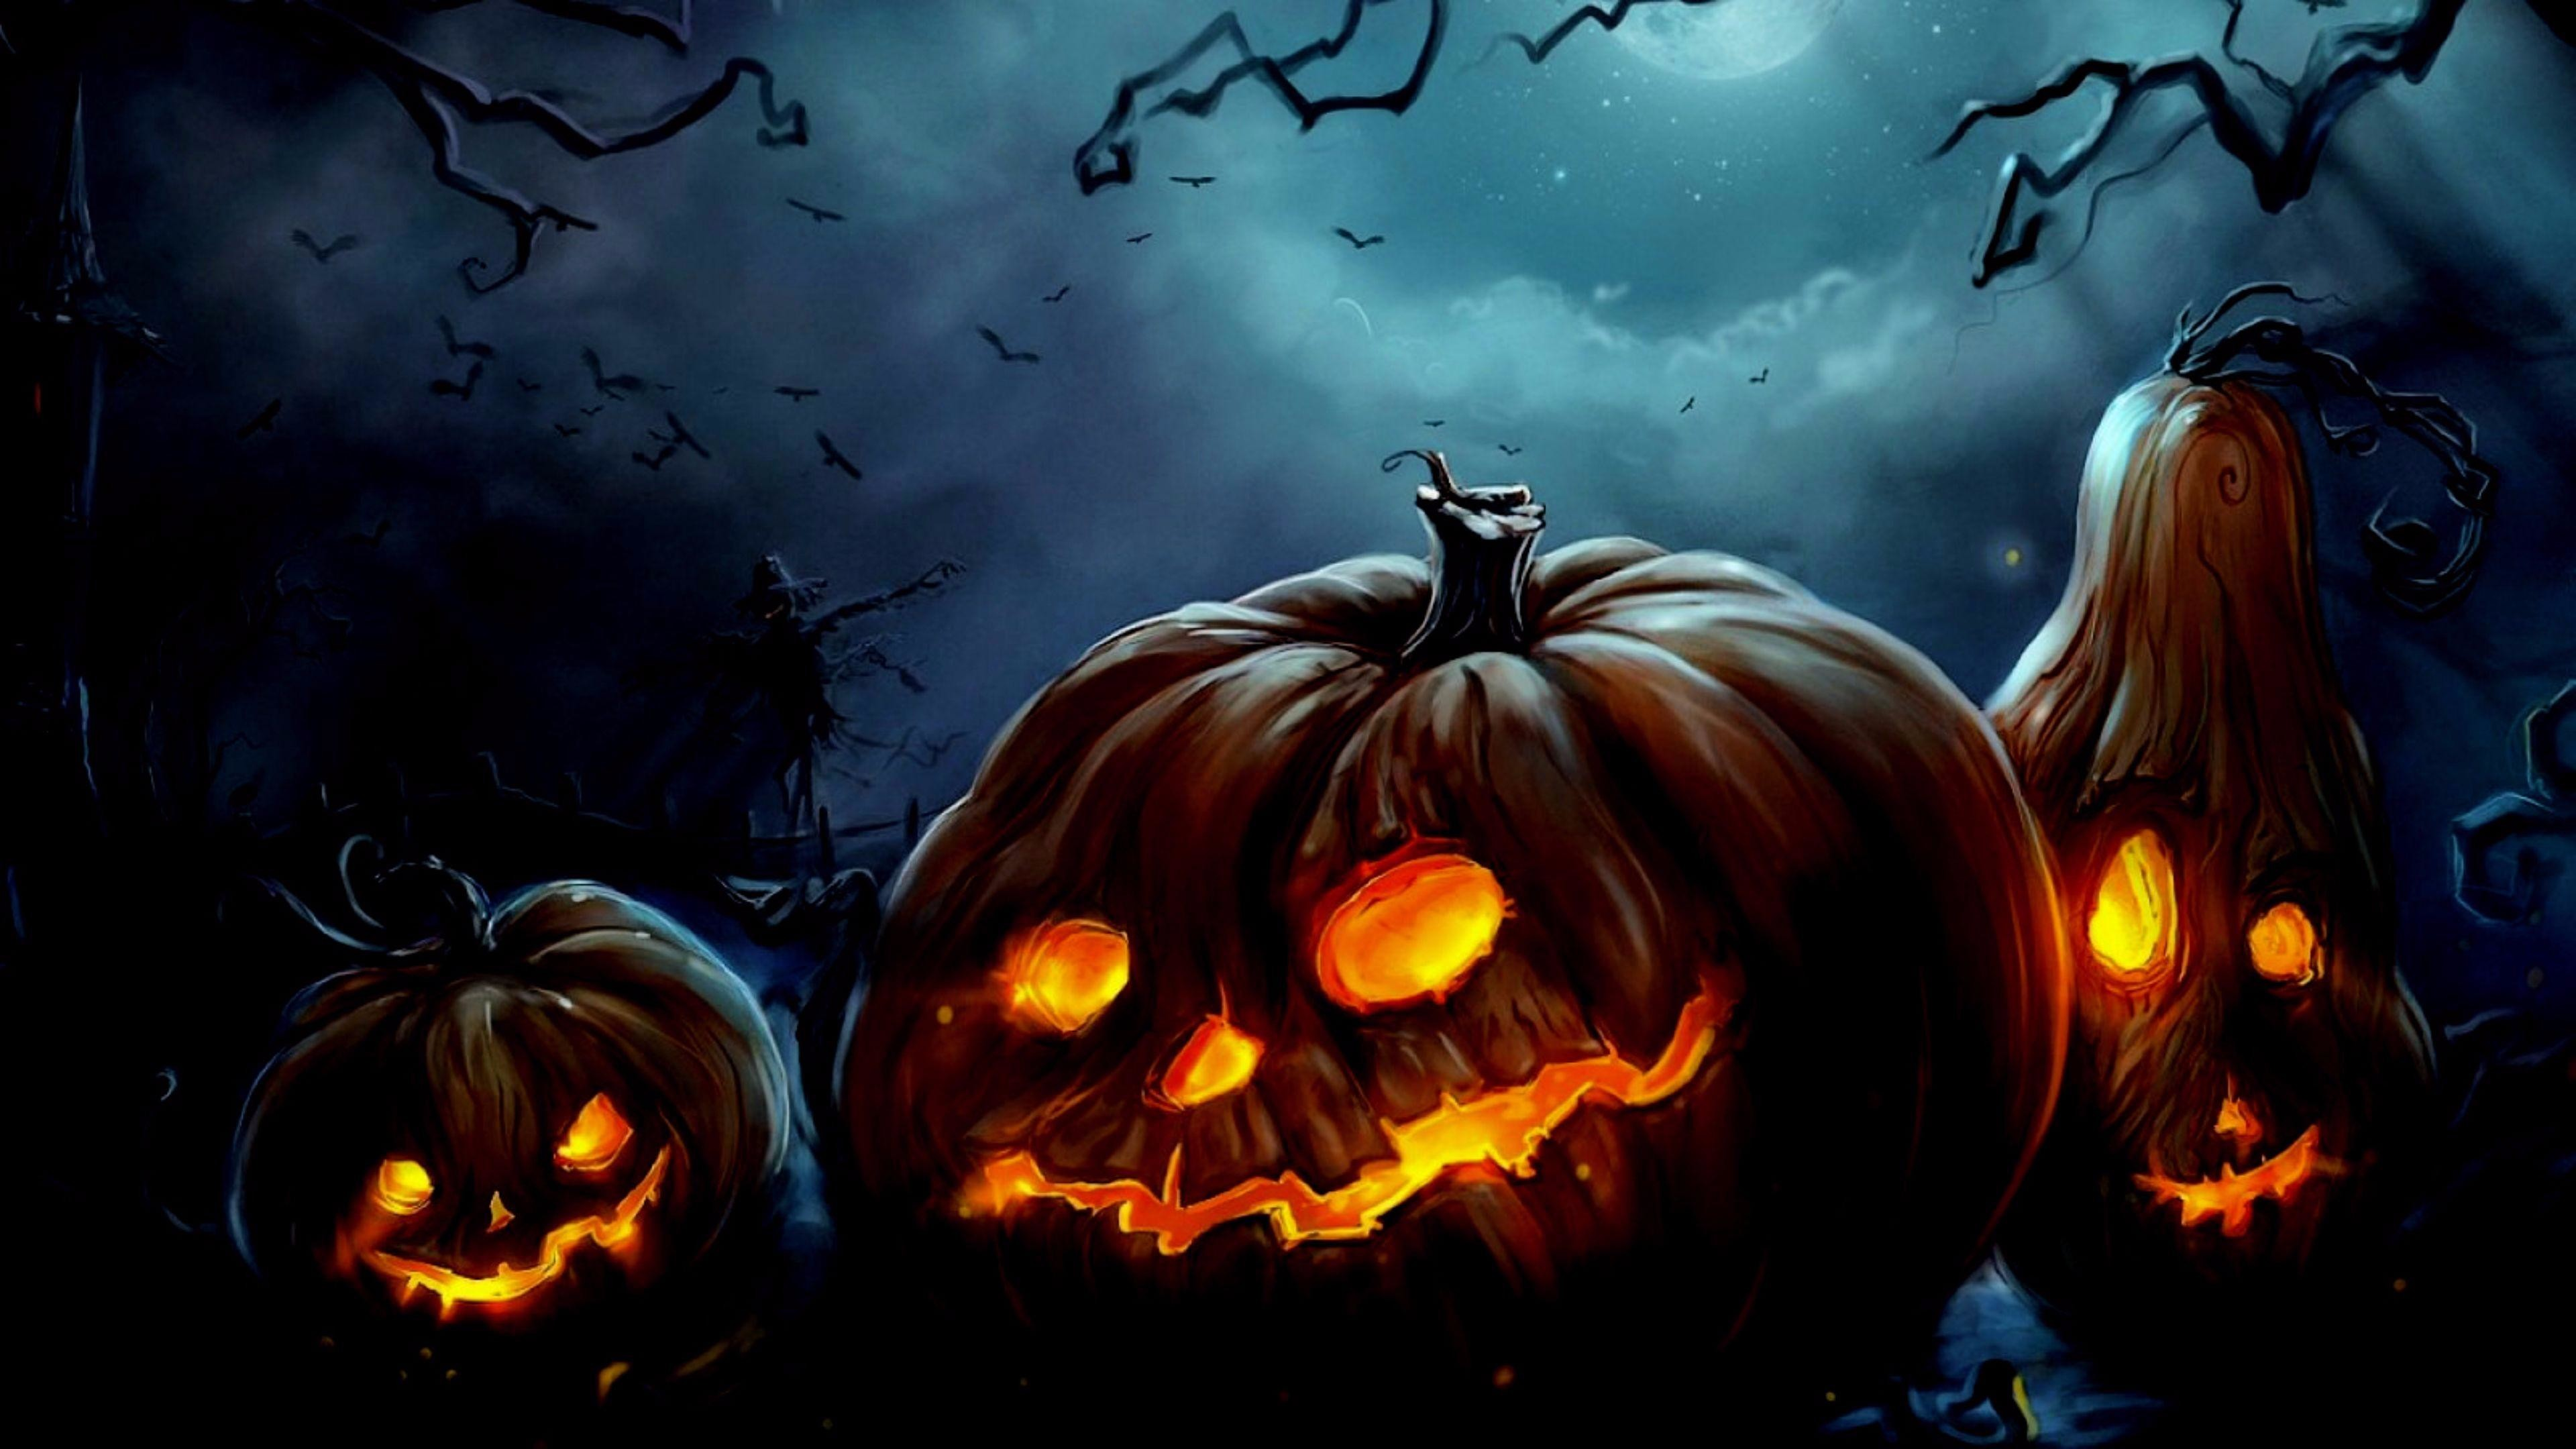 Res: 3840x2160, Happy Halloween Wallpaper | Wallpaper Studio 10 | Tens of thousands HD and  UltraHD wallpapers for Android, Windows and Xbox